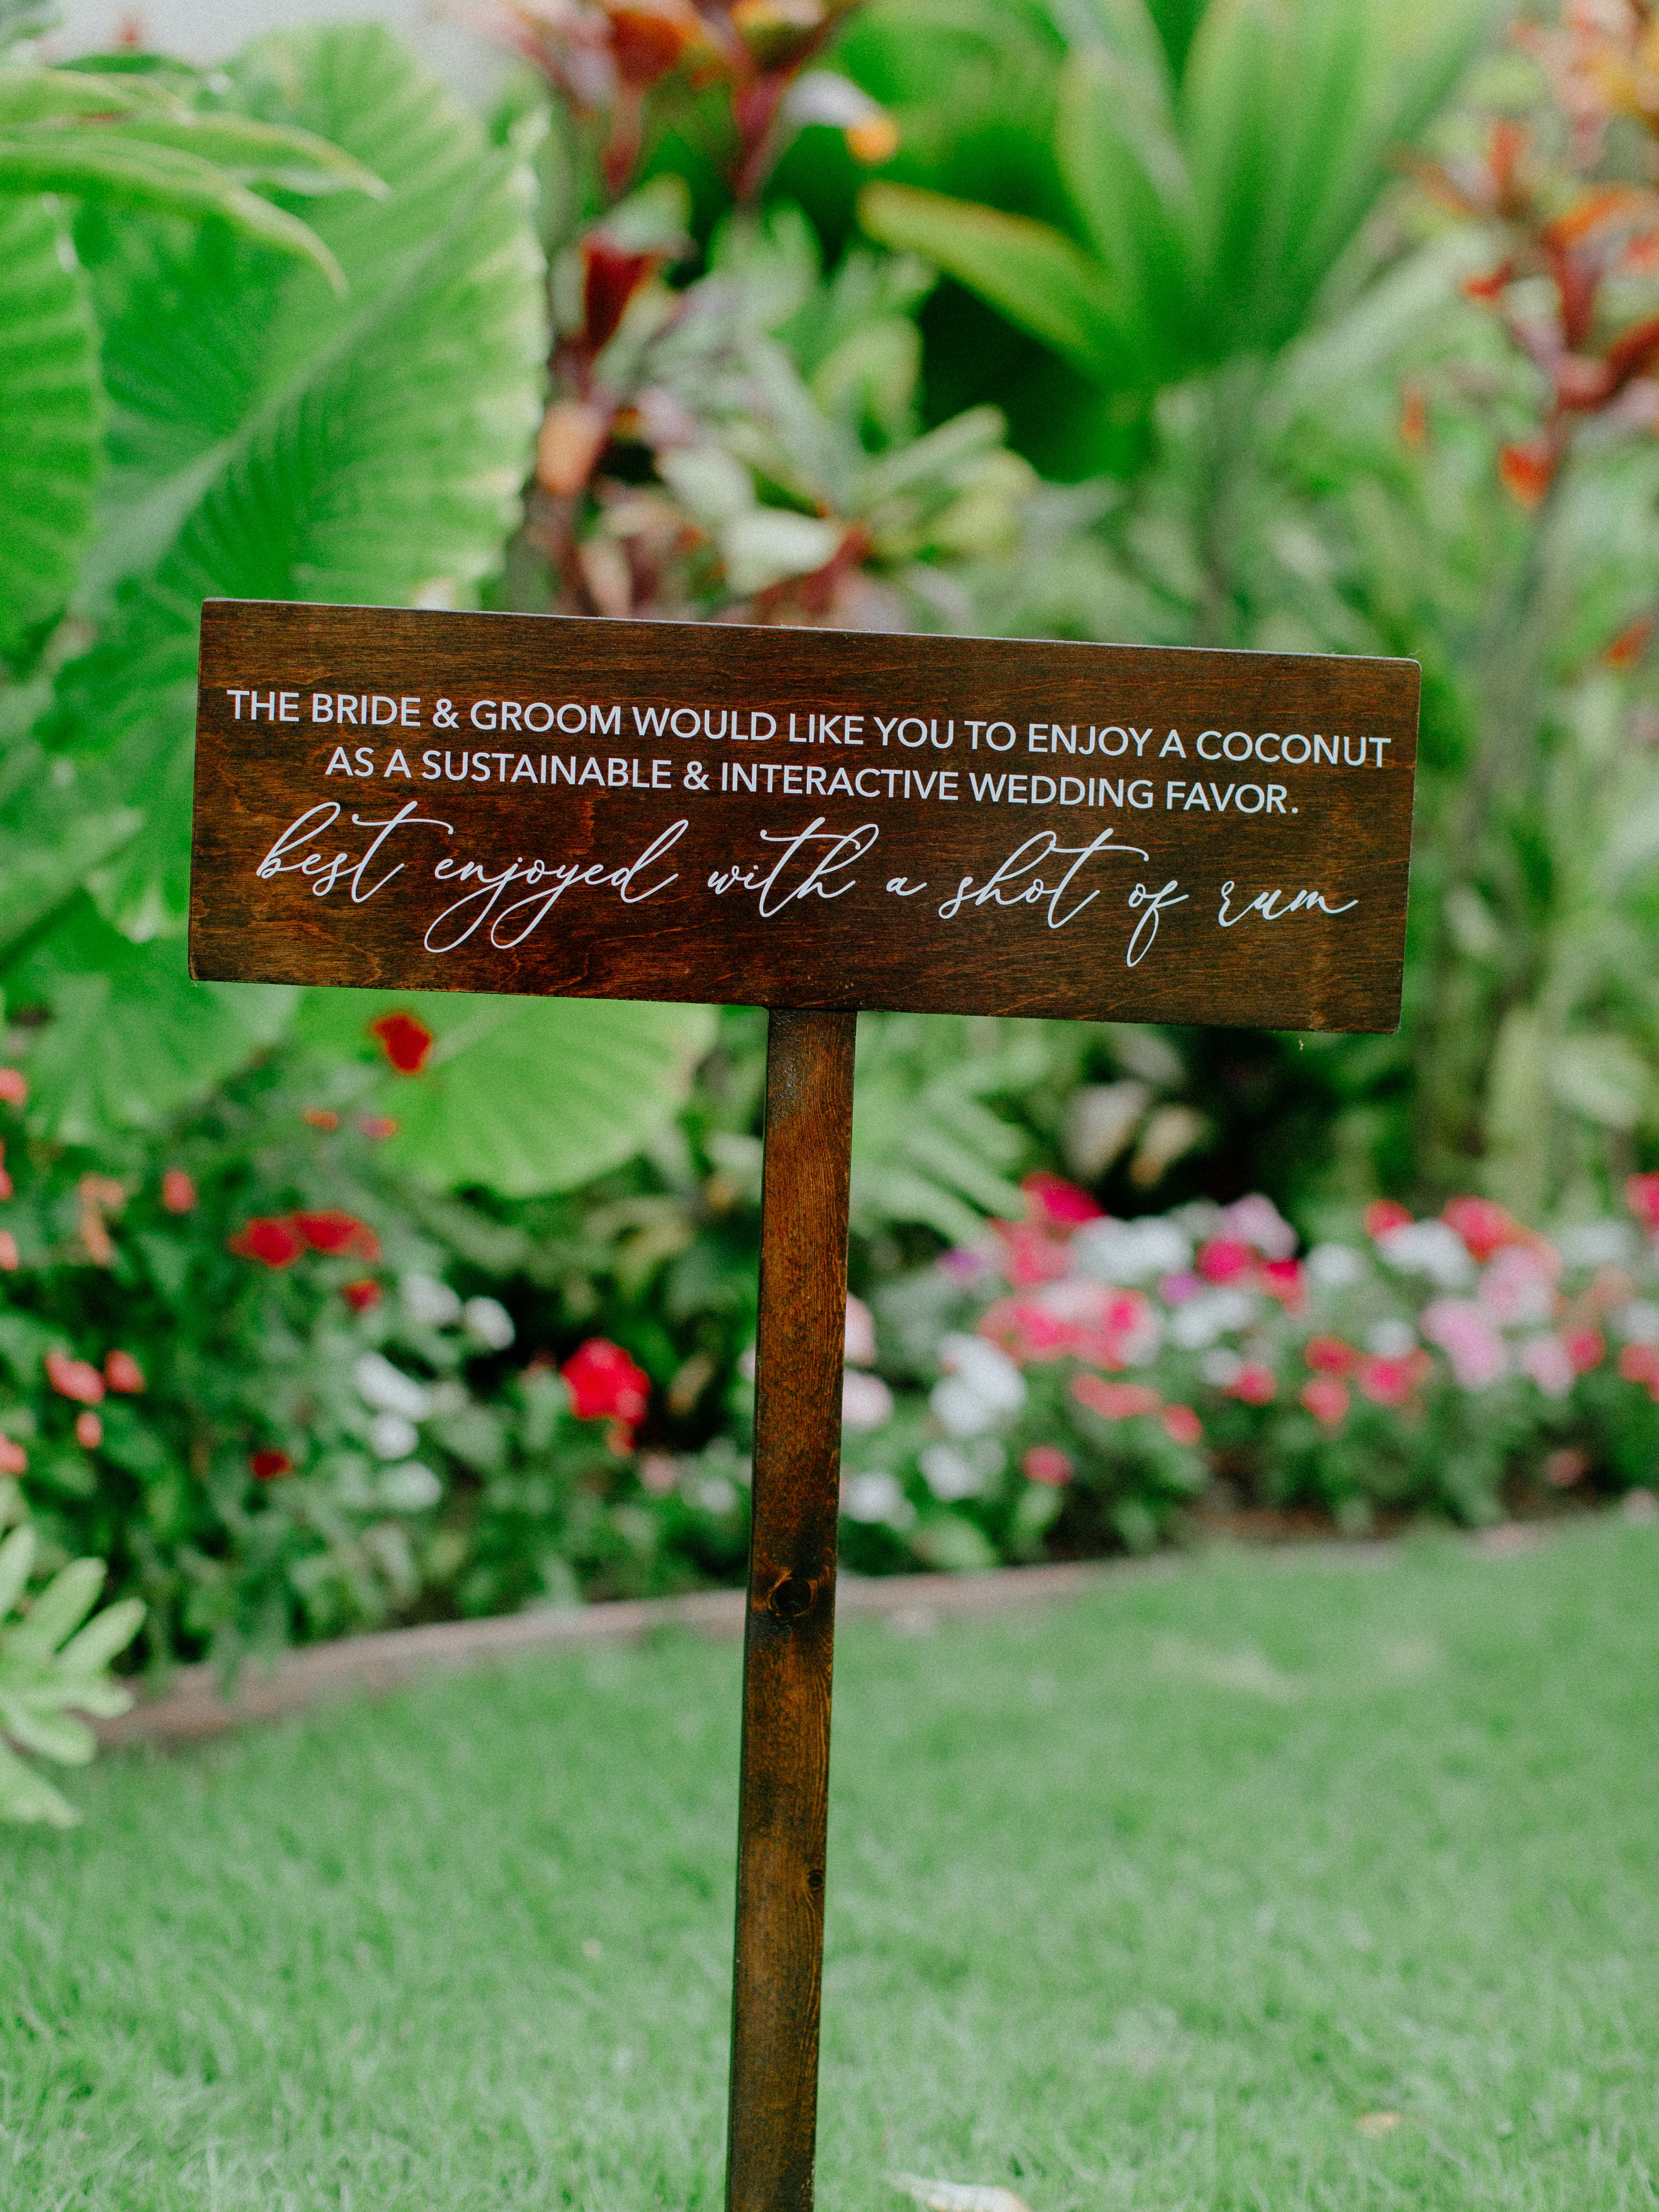 A sustainable and interactive wedding favor